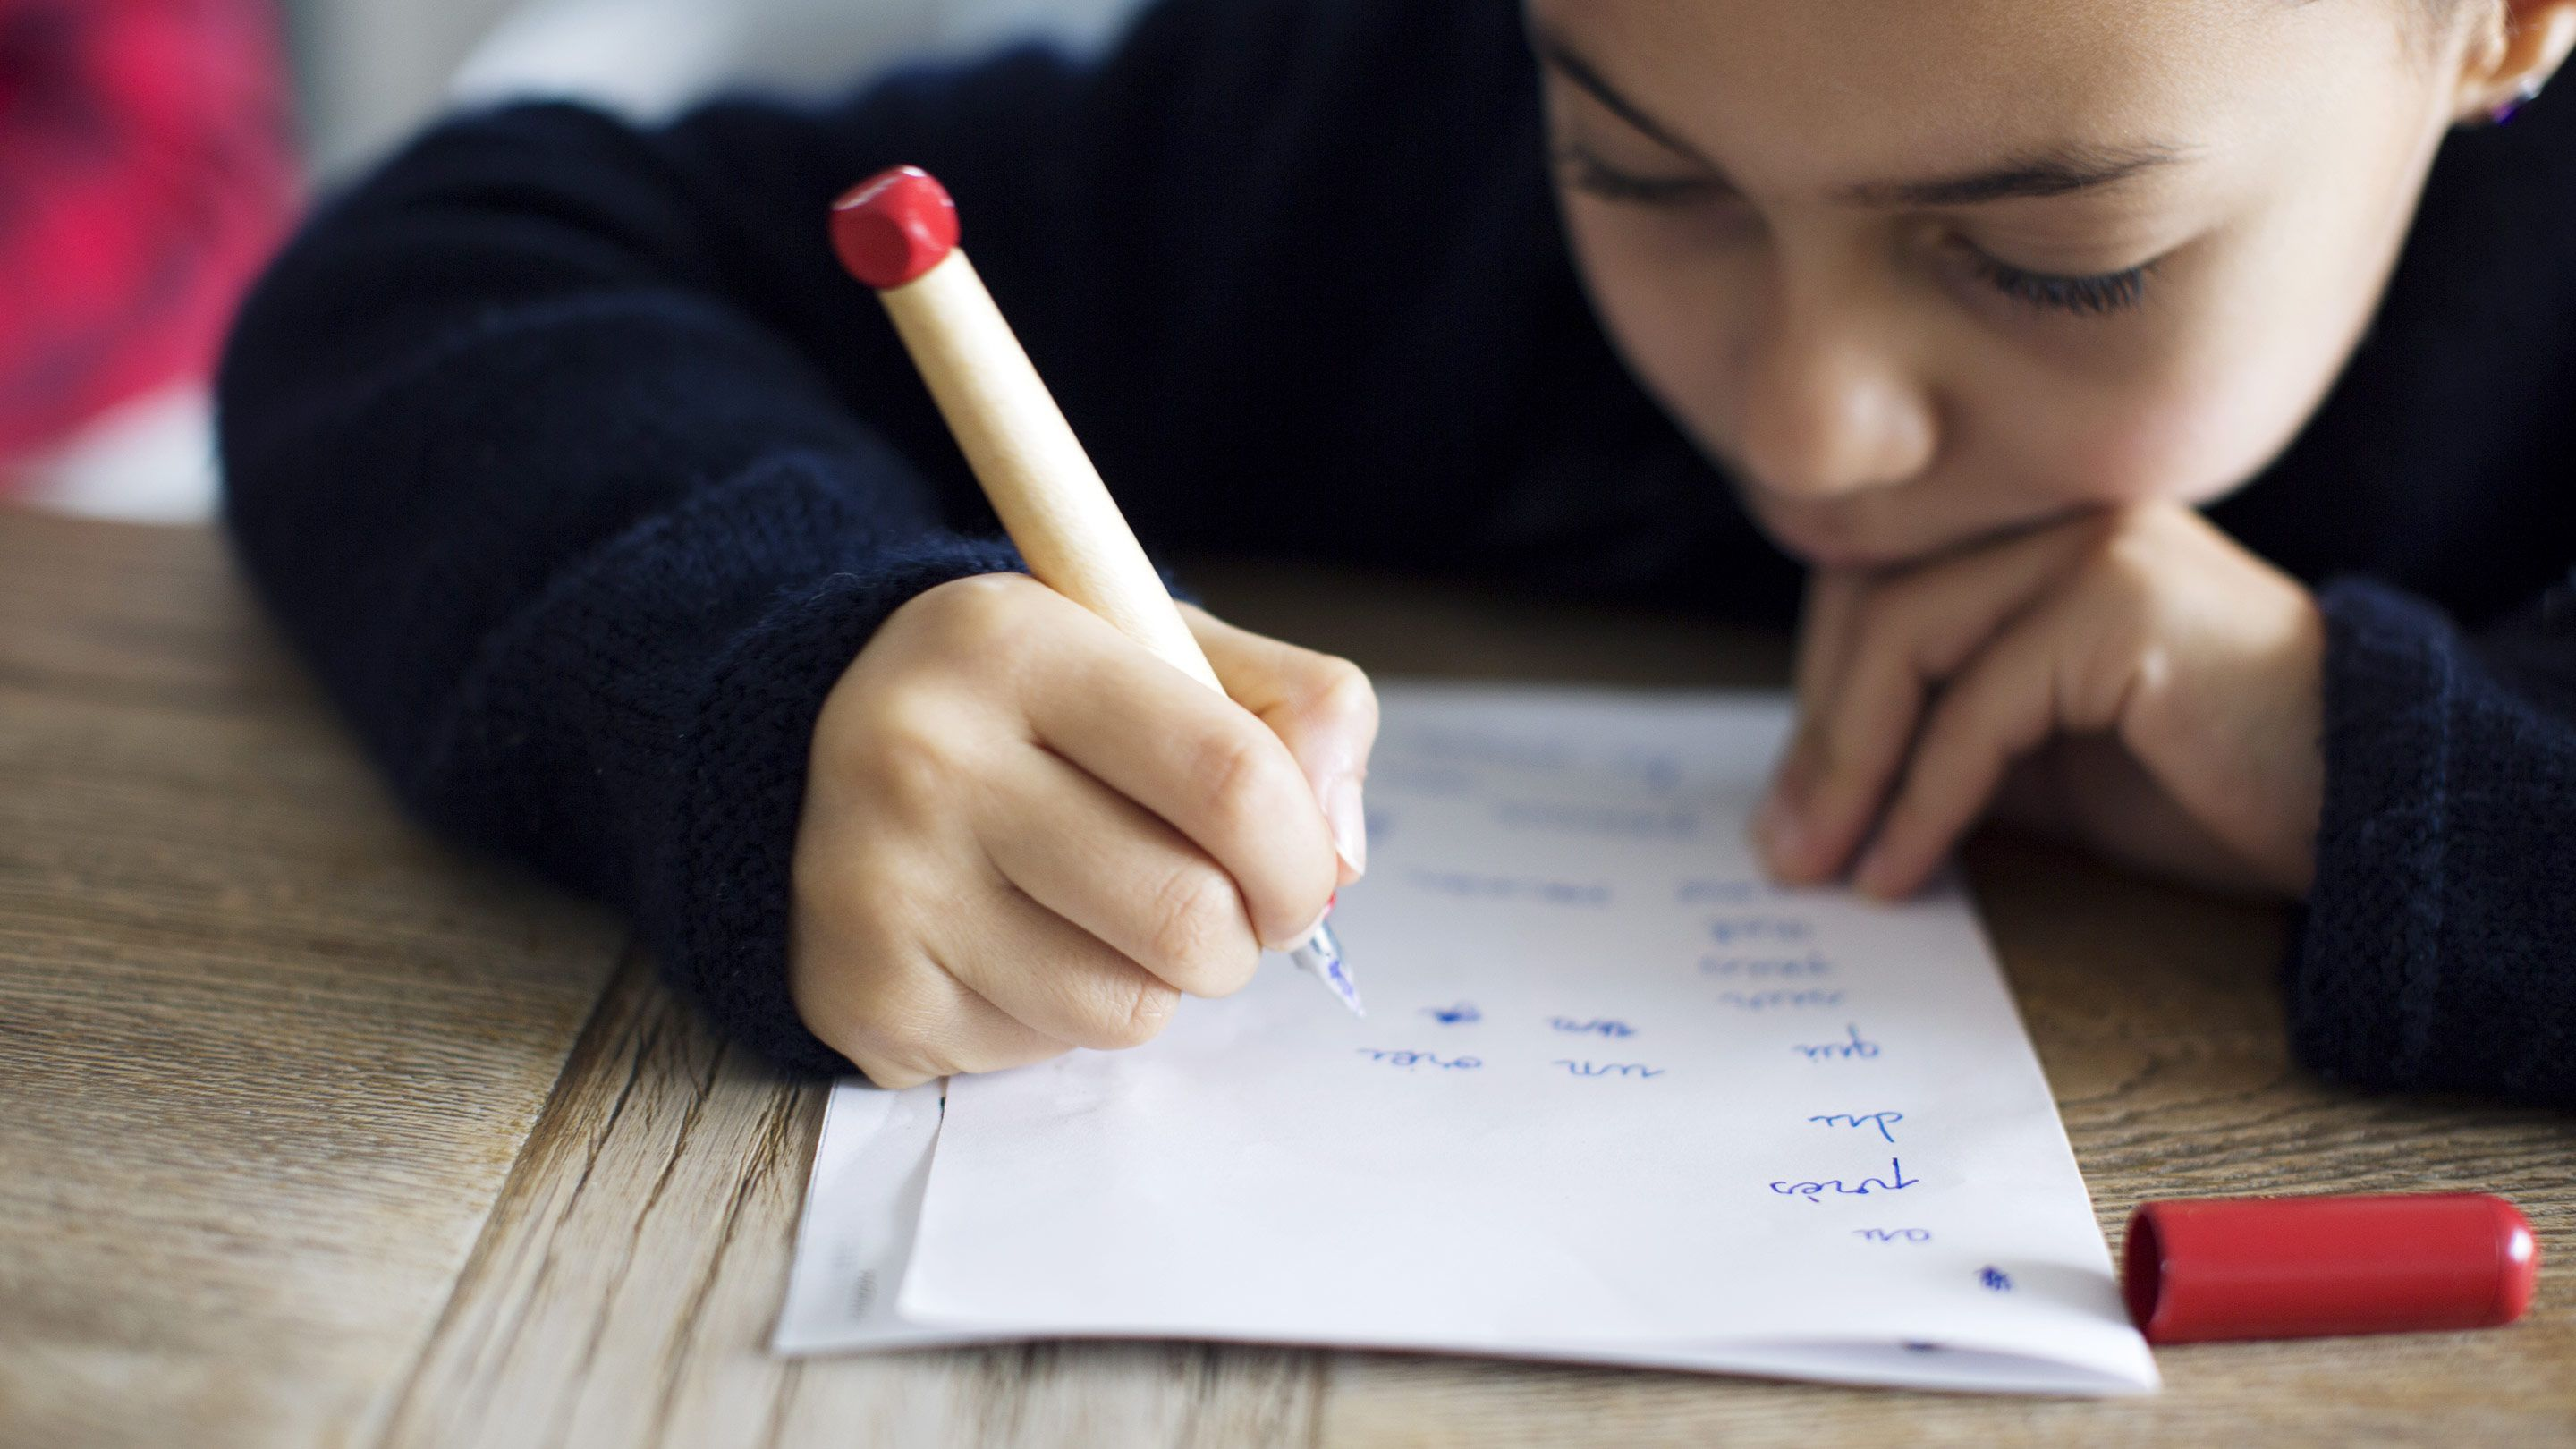 A young student does classwork in pen.